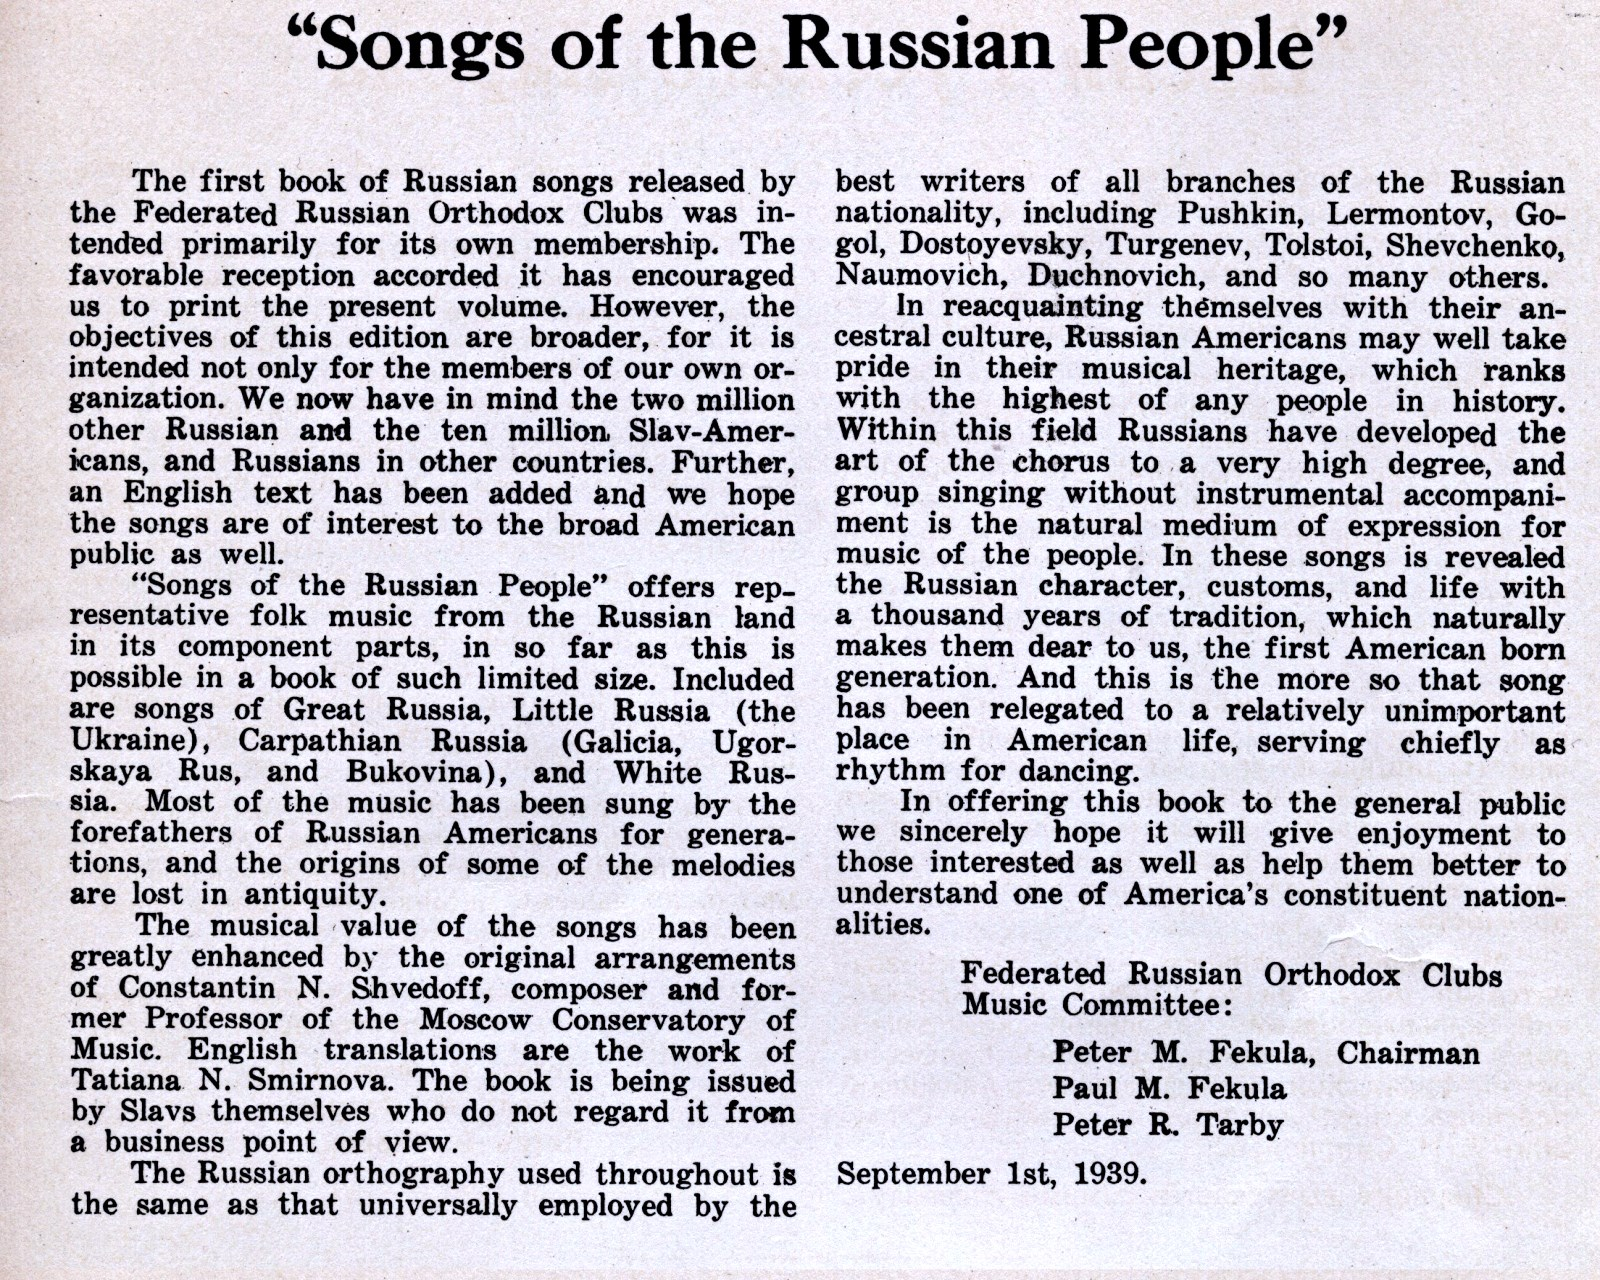 songs of the russian peoples